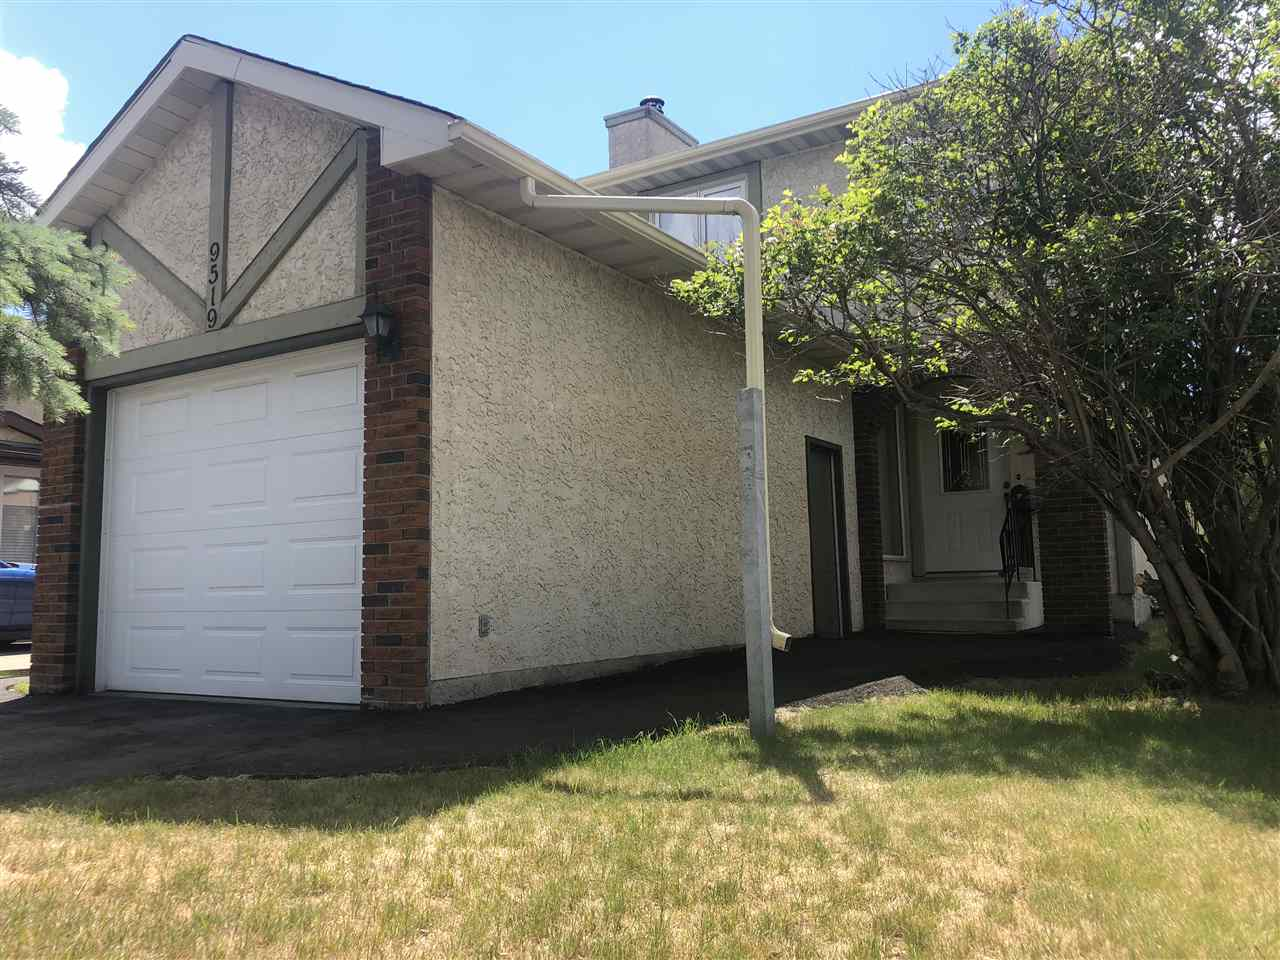 9519 173 Avenue NW, 3 bed, 1.1 bath, at $329,900